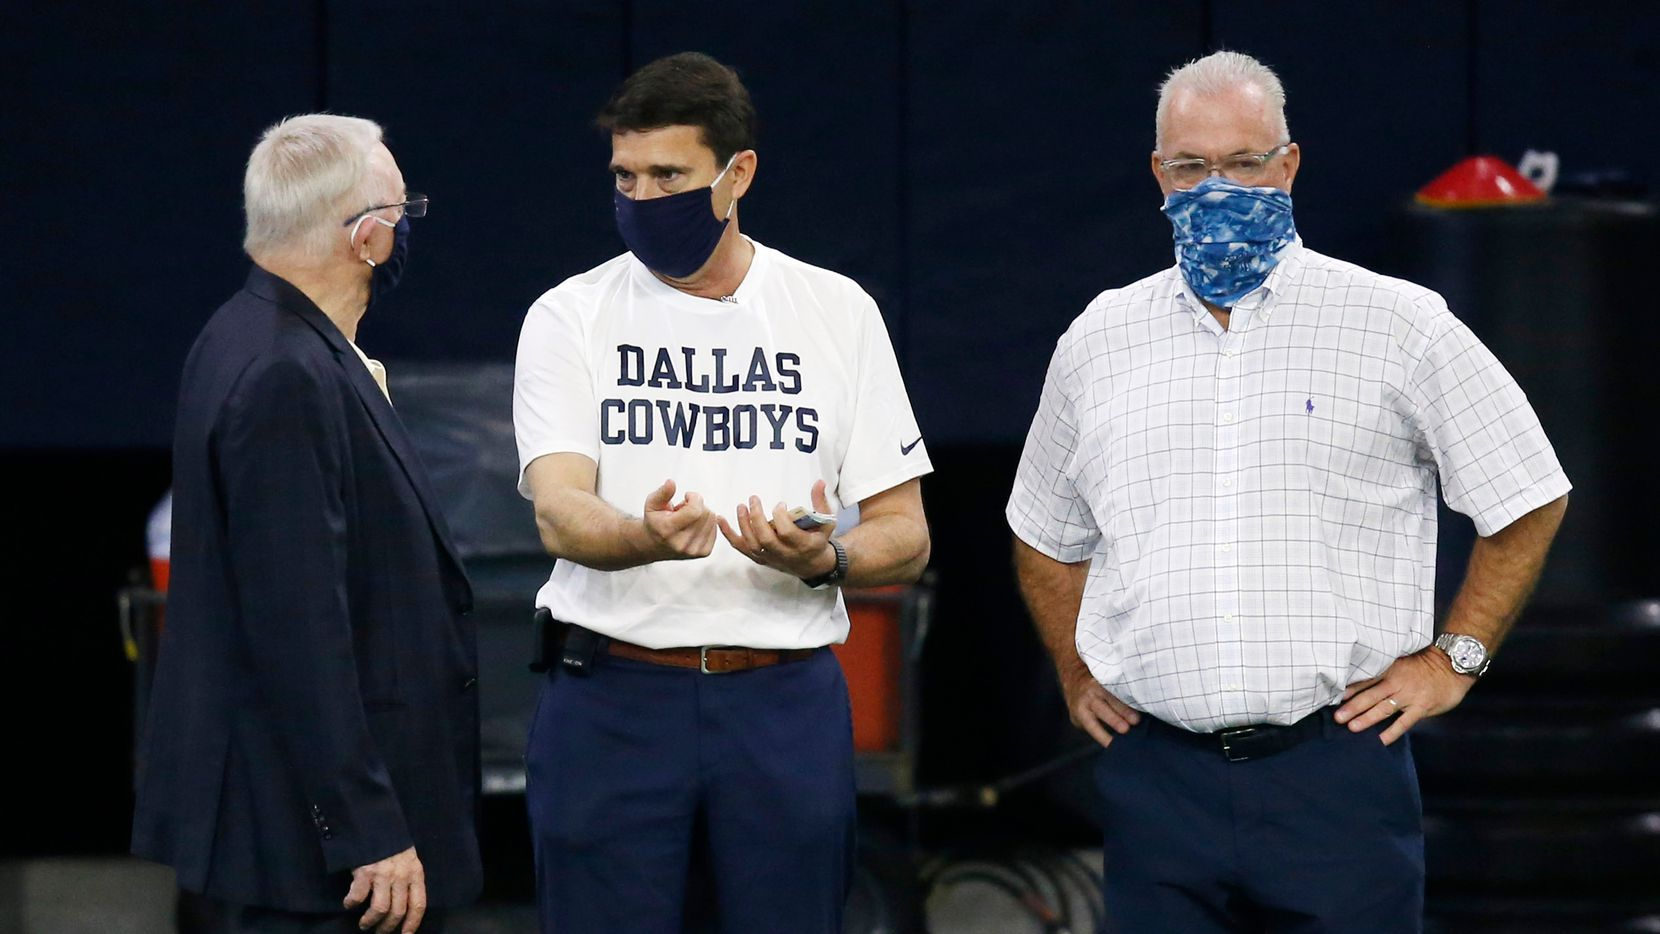 Cowboys owner and general manager Jerry Jones (left) talks with athletic trainer Jim Maurer (center) and executive vice president Stephen Jones (right) during training camp at The Star in Frisco on Monday, Aug. 24, 2020.